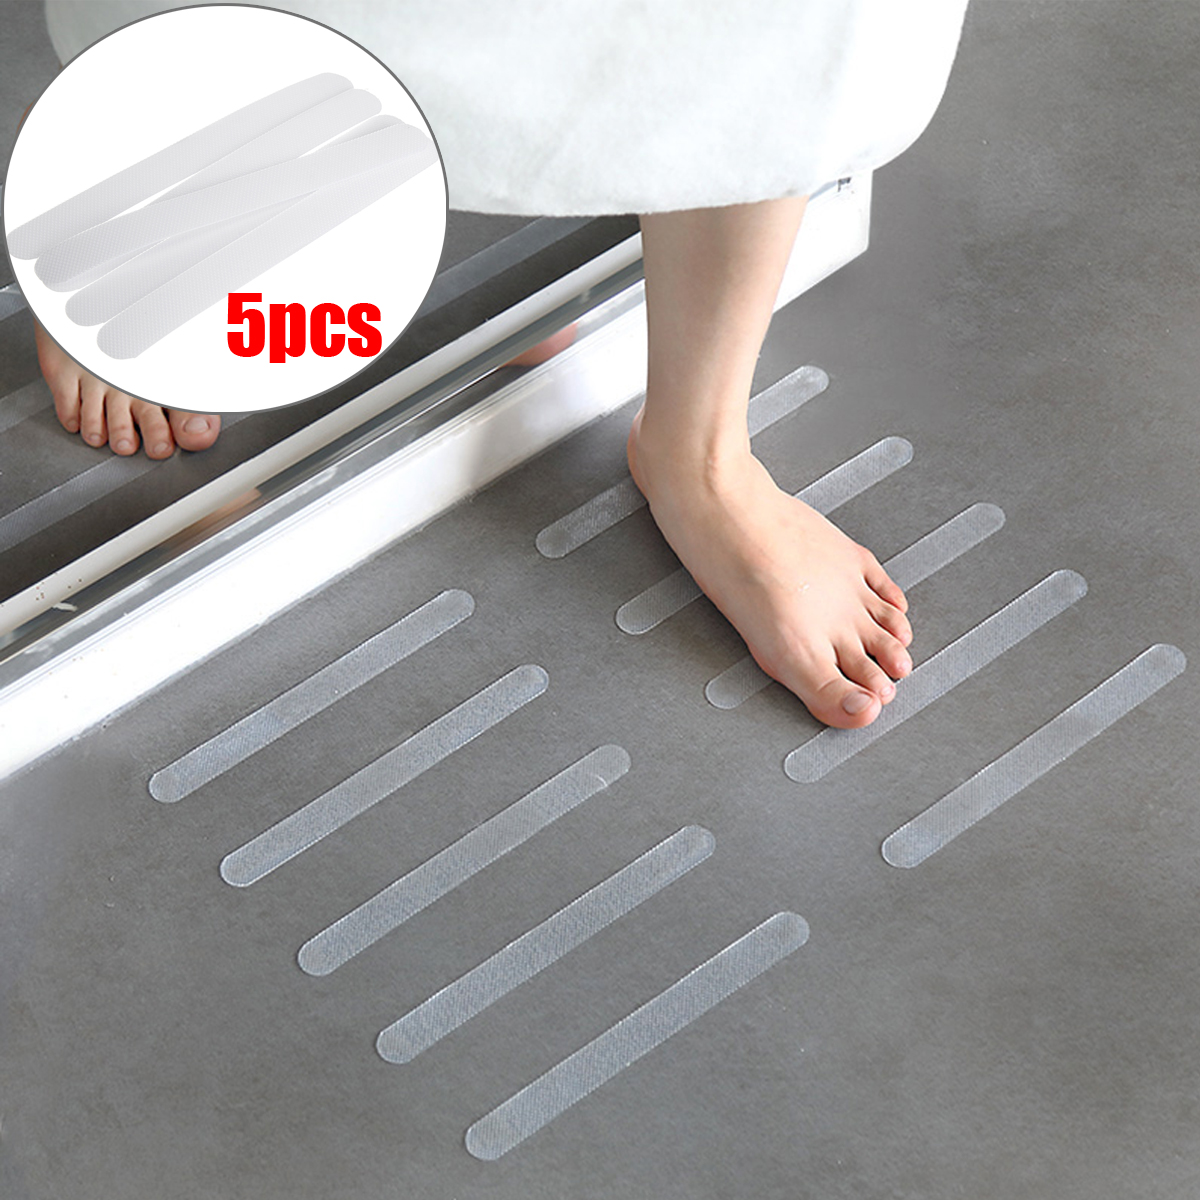 Active Components Smart Kiwarm 5/10/25pcs Bathroom Transparent Non-slip Anti Skid Strip Bath Tub Treads Stickers Safety For Stairs Pools Kitchens Home Decor